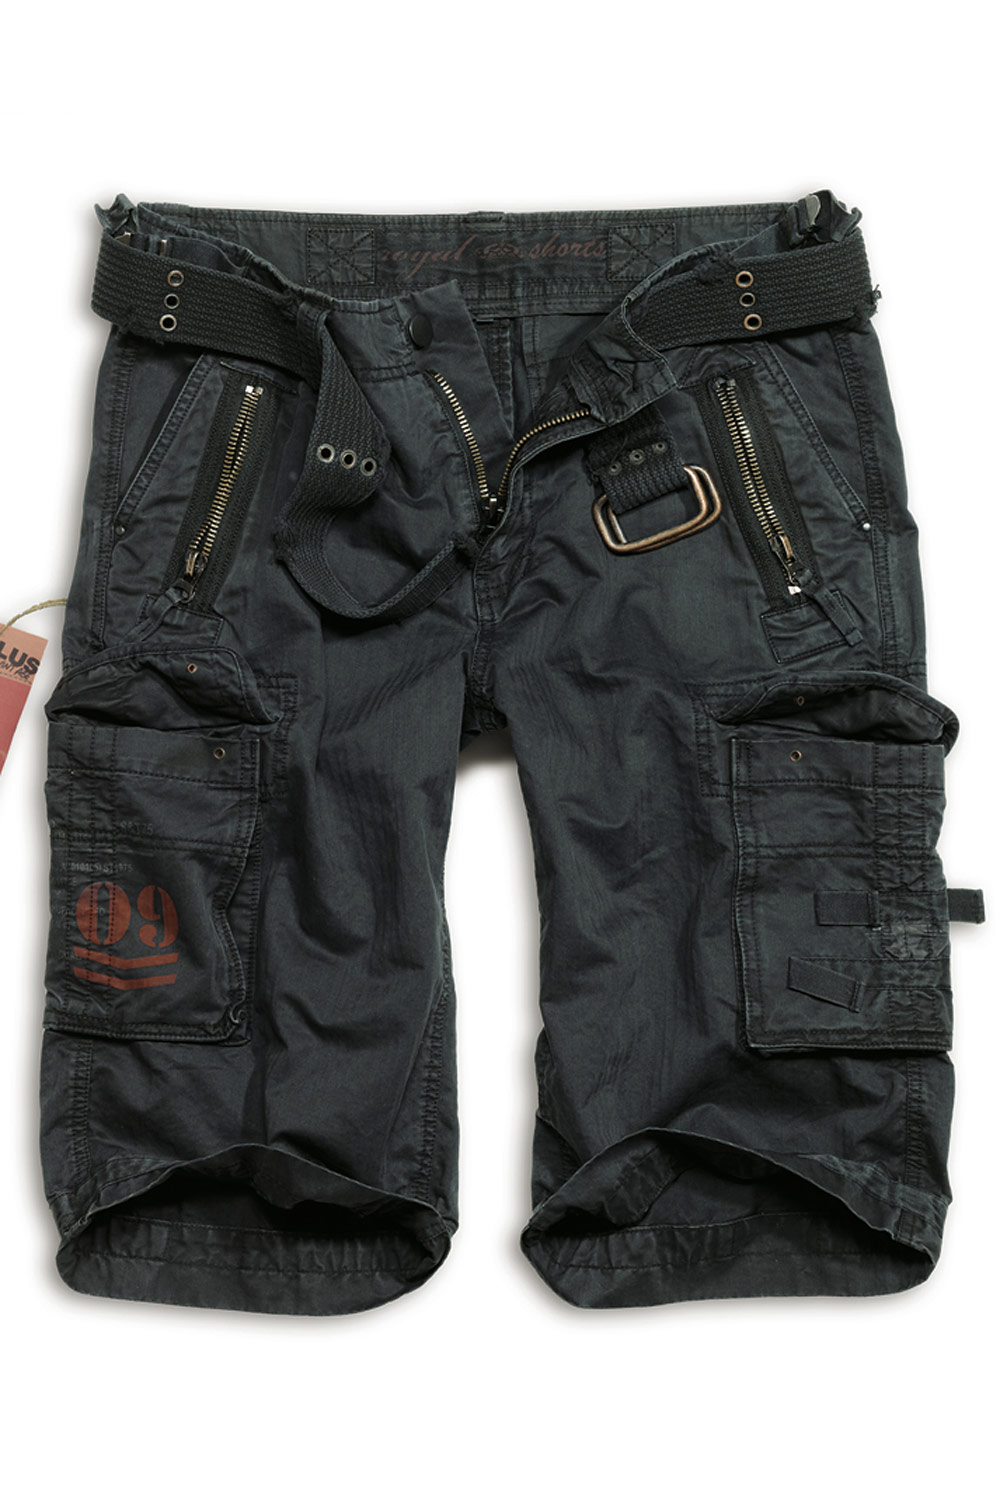 SURPLUS vintage shorts at oboy.com